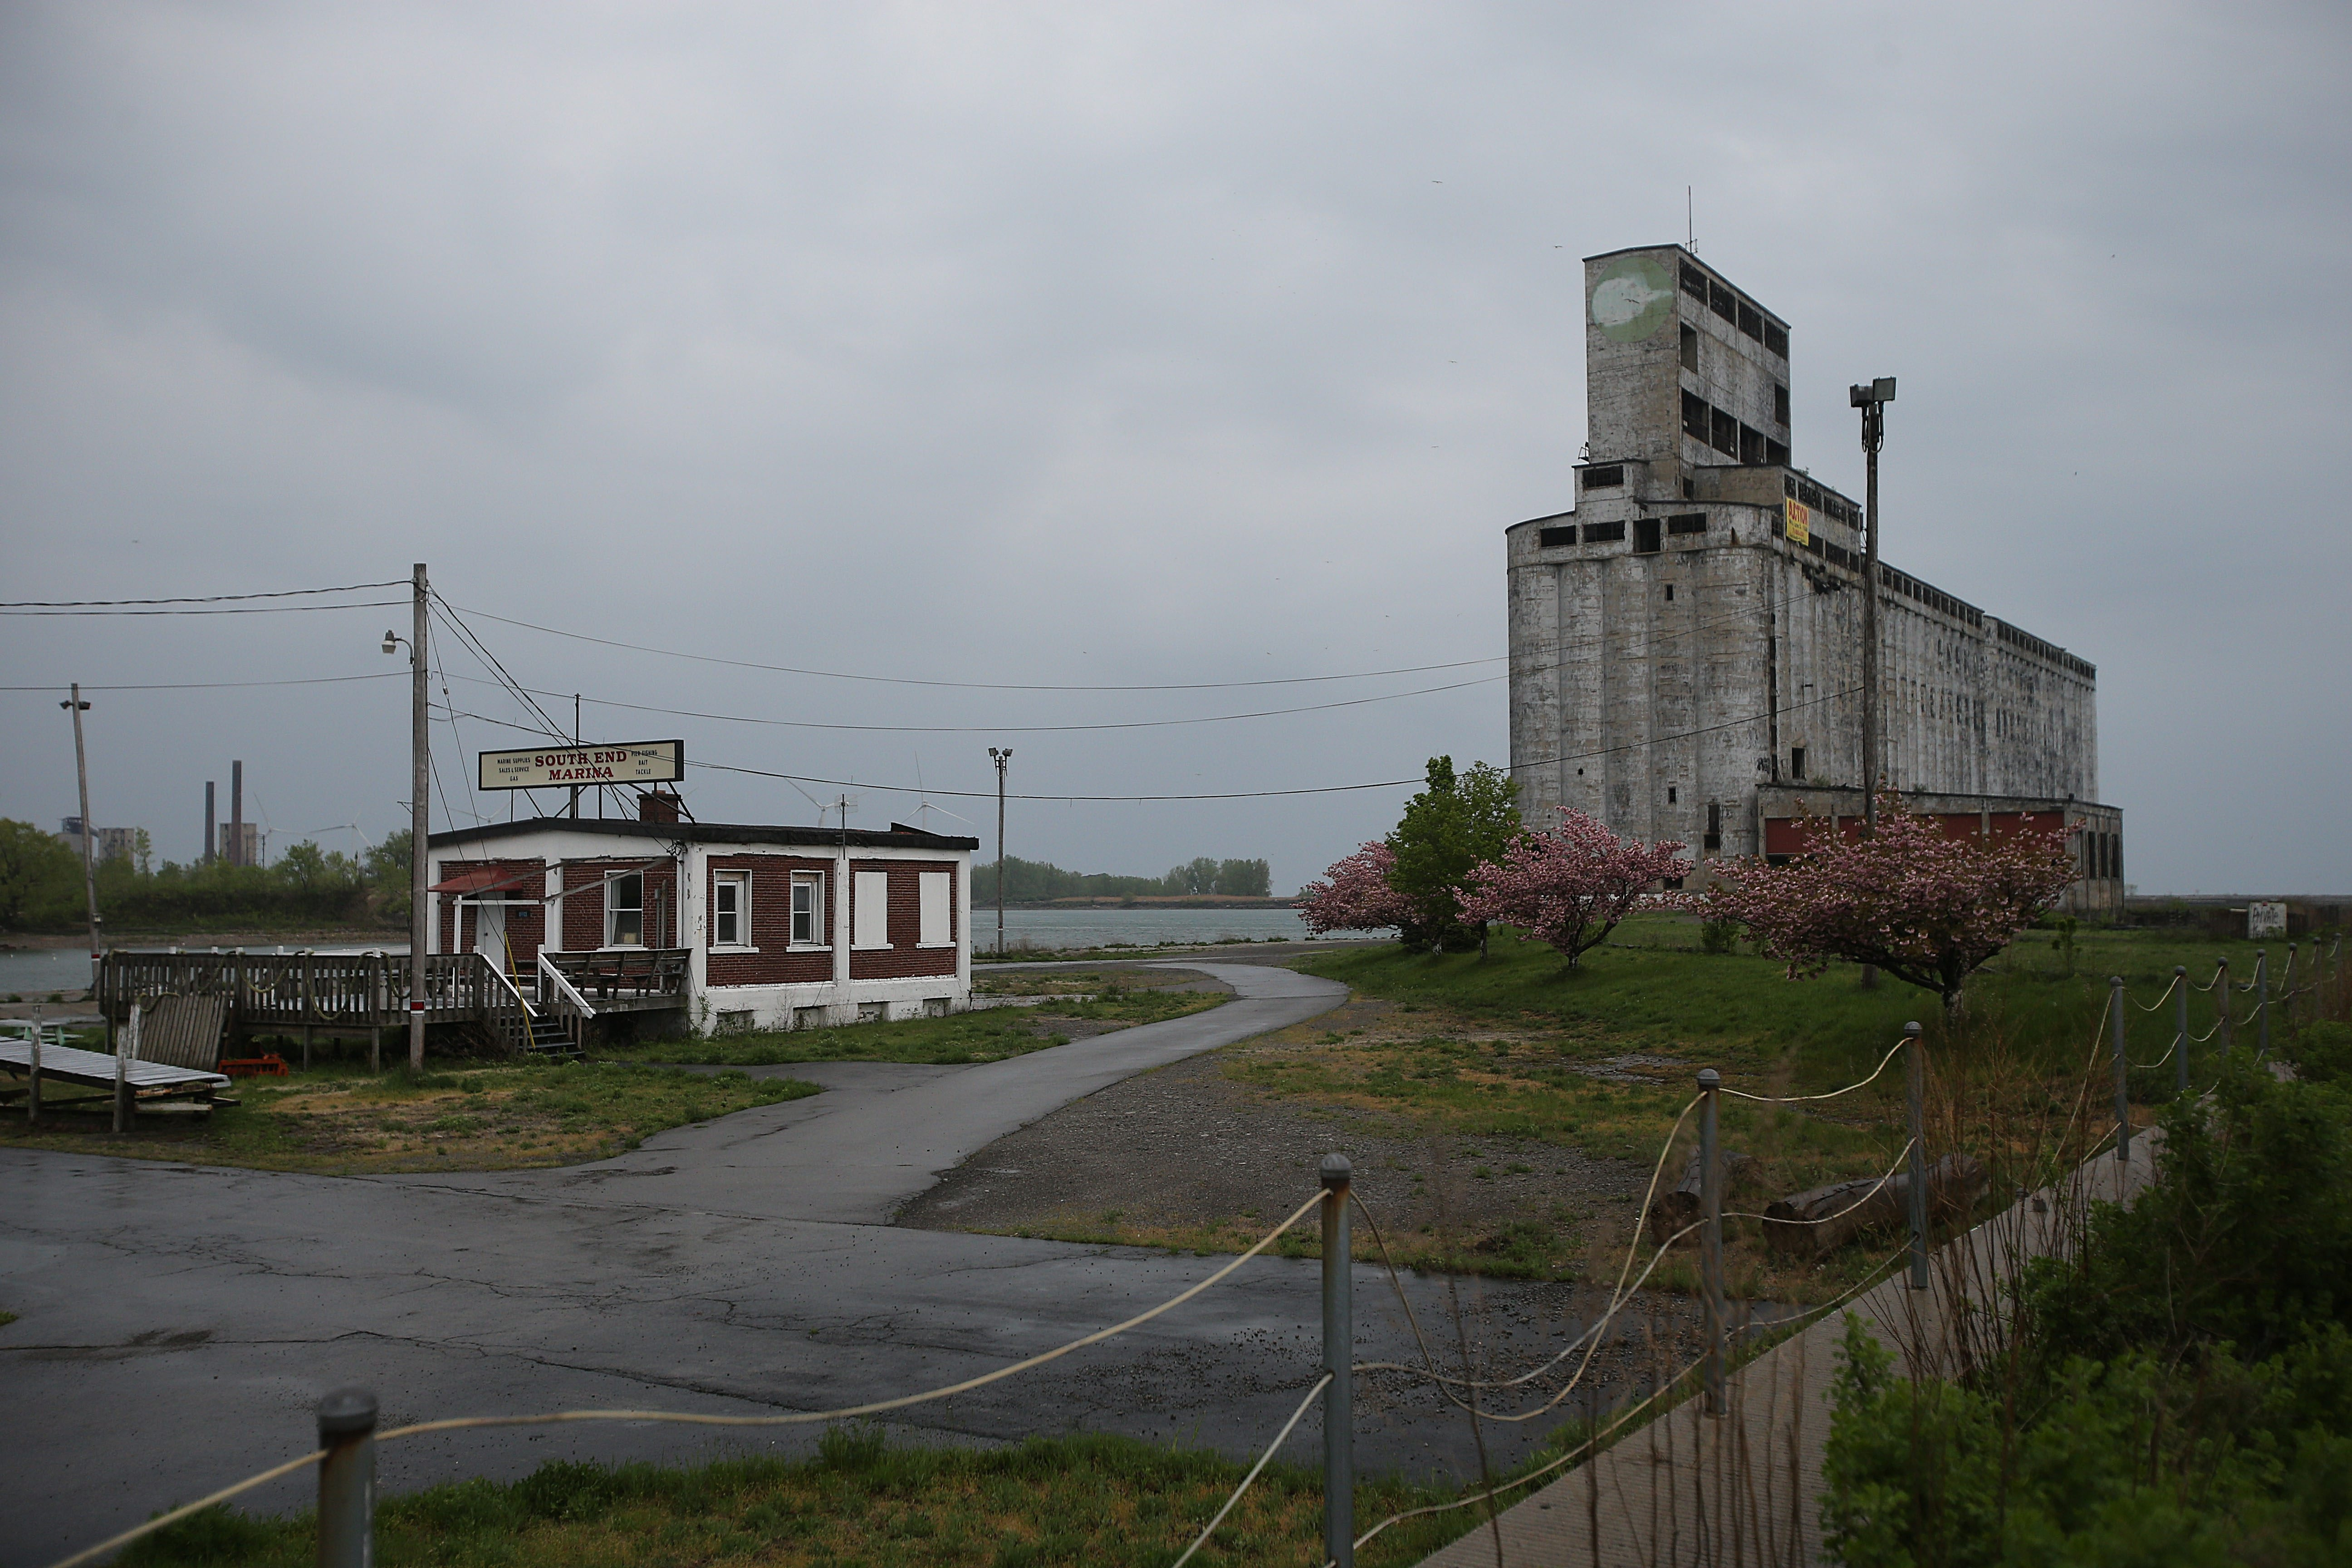 The waterfront parcel that is home to the South End Marina building and the cluster of grain silos is to be redeveloped.